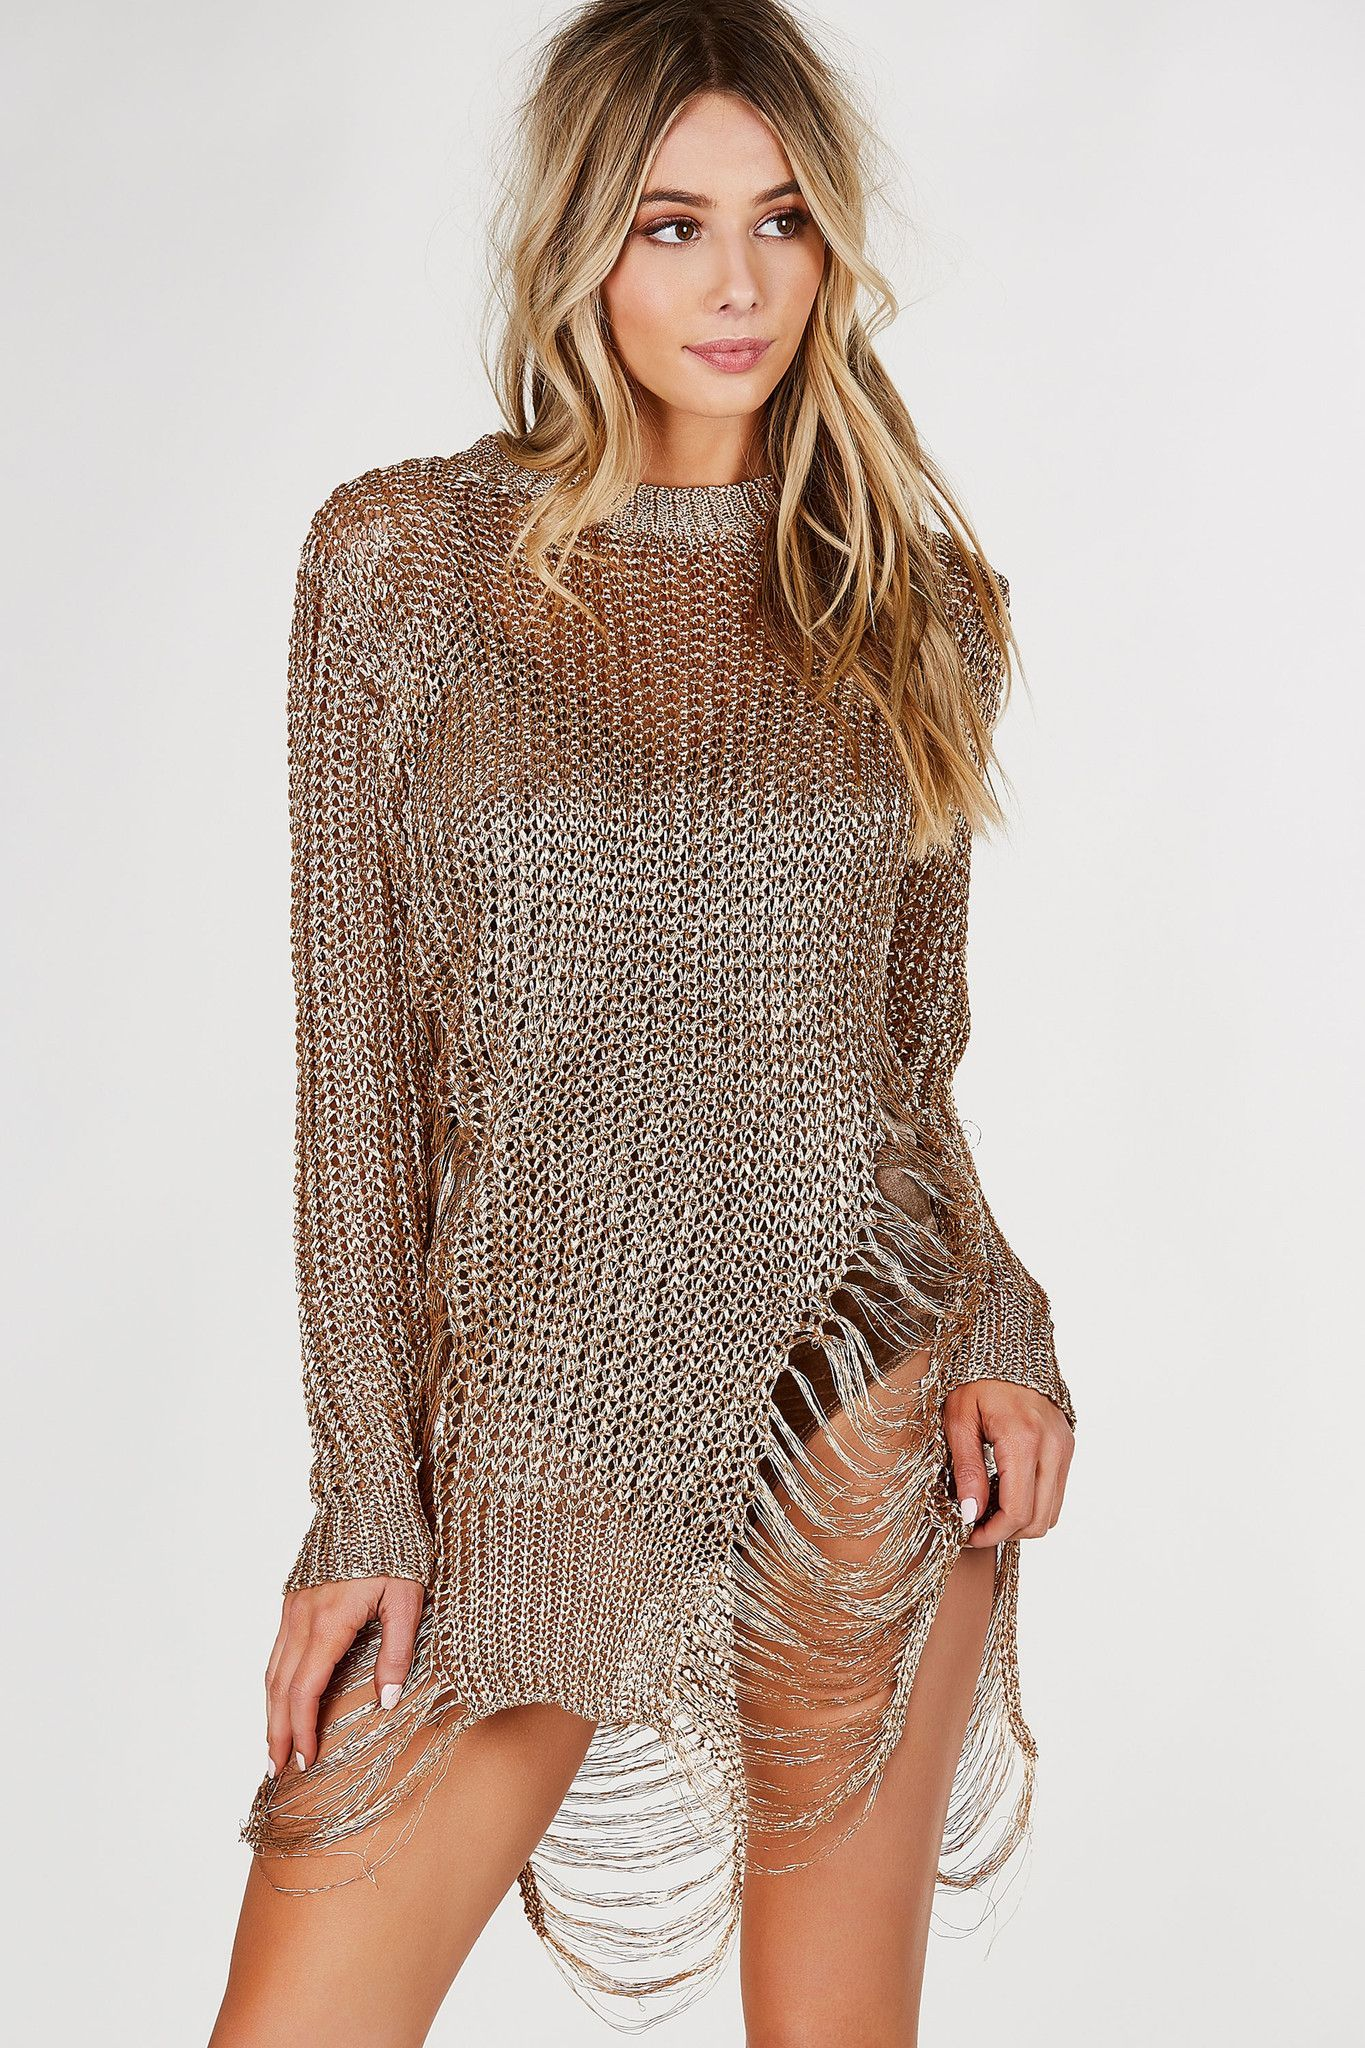 Crew neck loose knit tunic with metallic finish. Shredded detailing with relaxed fit. - 100% Polyester - Imported - Model is wearing size S-M - Runs true to size - Dry clean recommended - Also availab